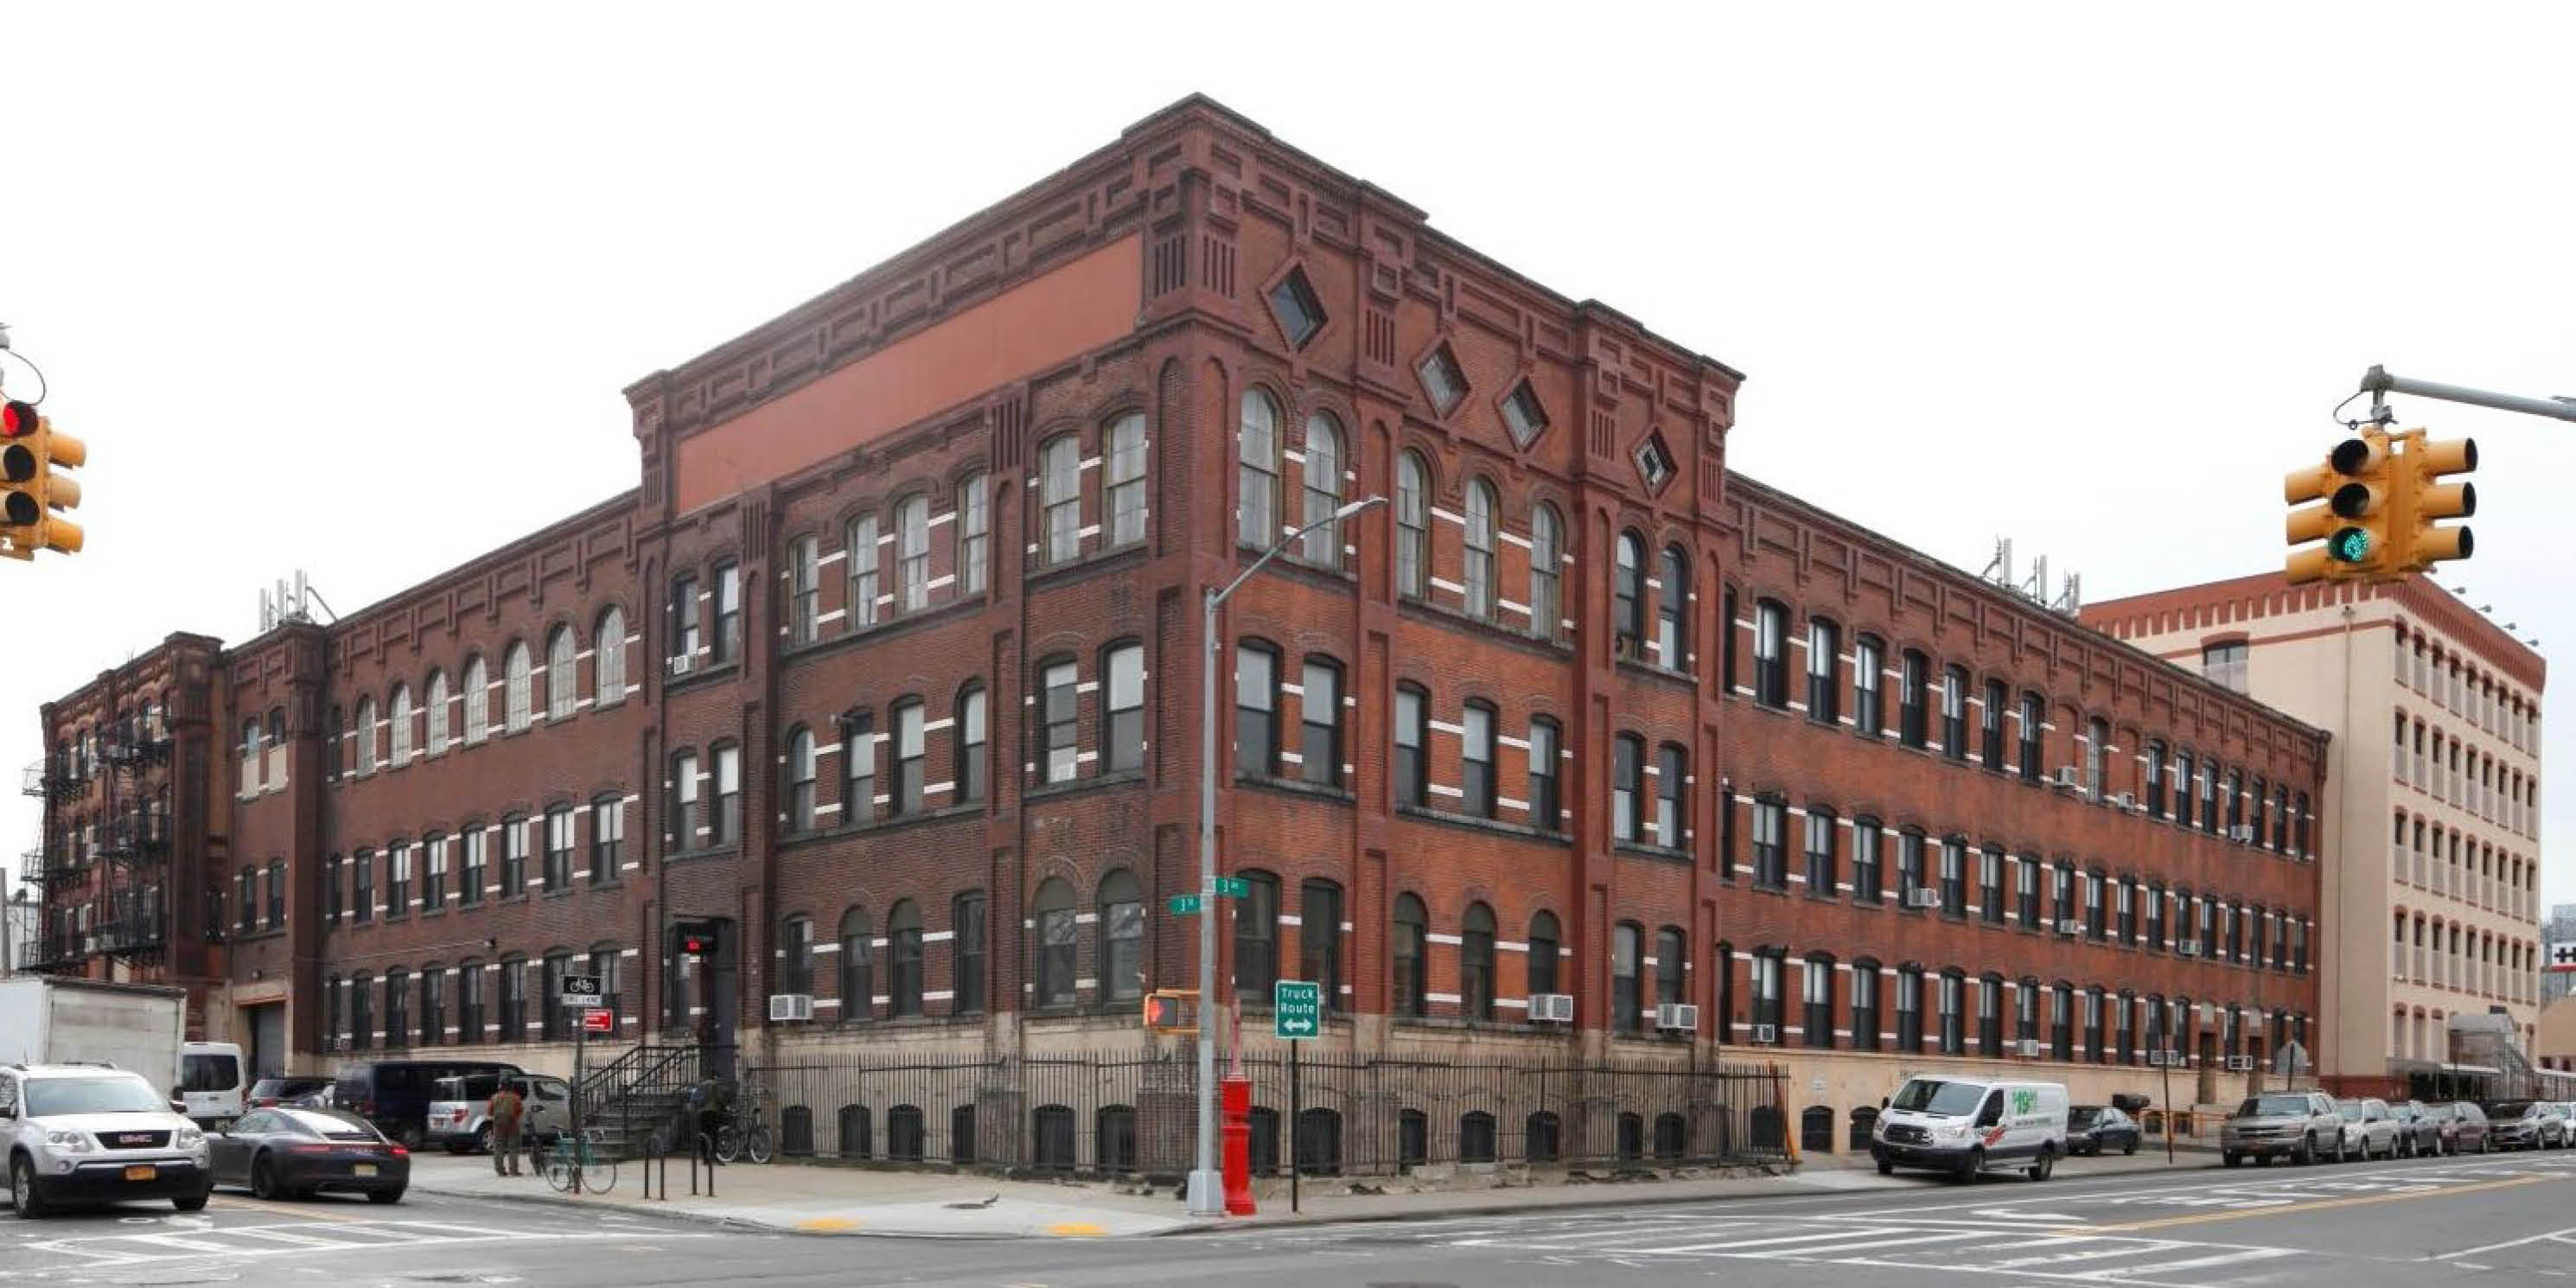 exterior of the Somers Brothers Tinware Factory in Gowanus, Brooklyn